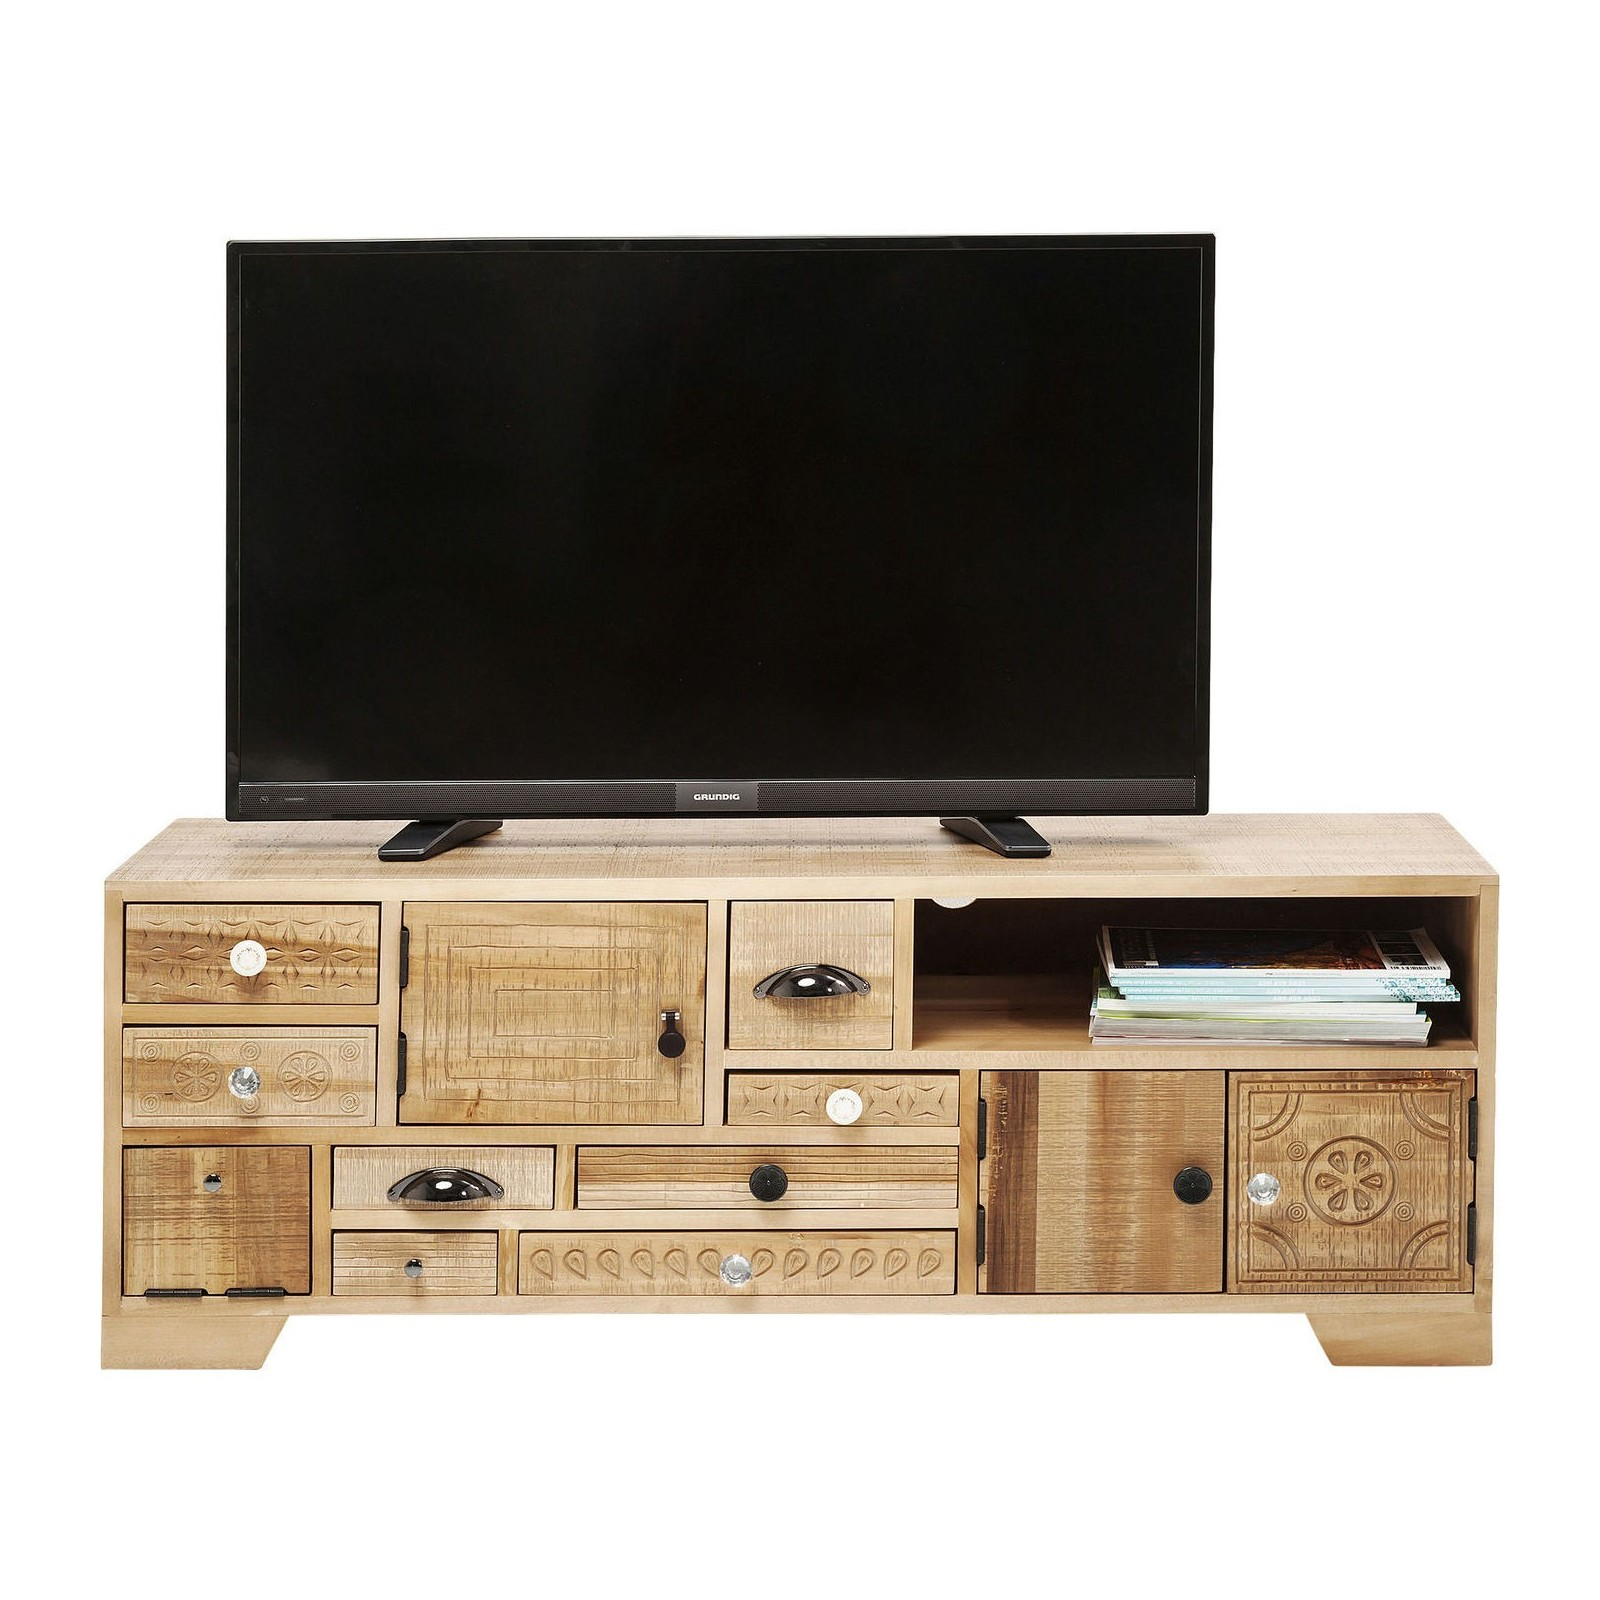 Meuble tv purezza kare design - Meuble kare design ...